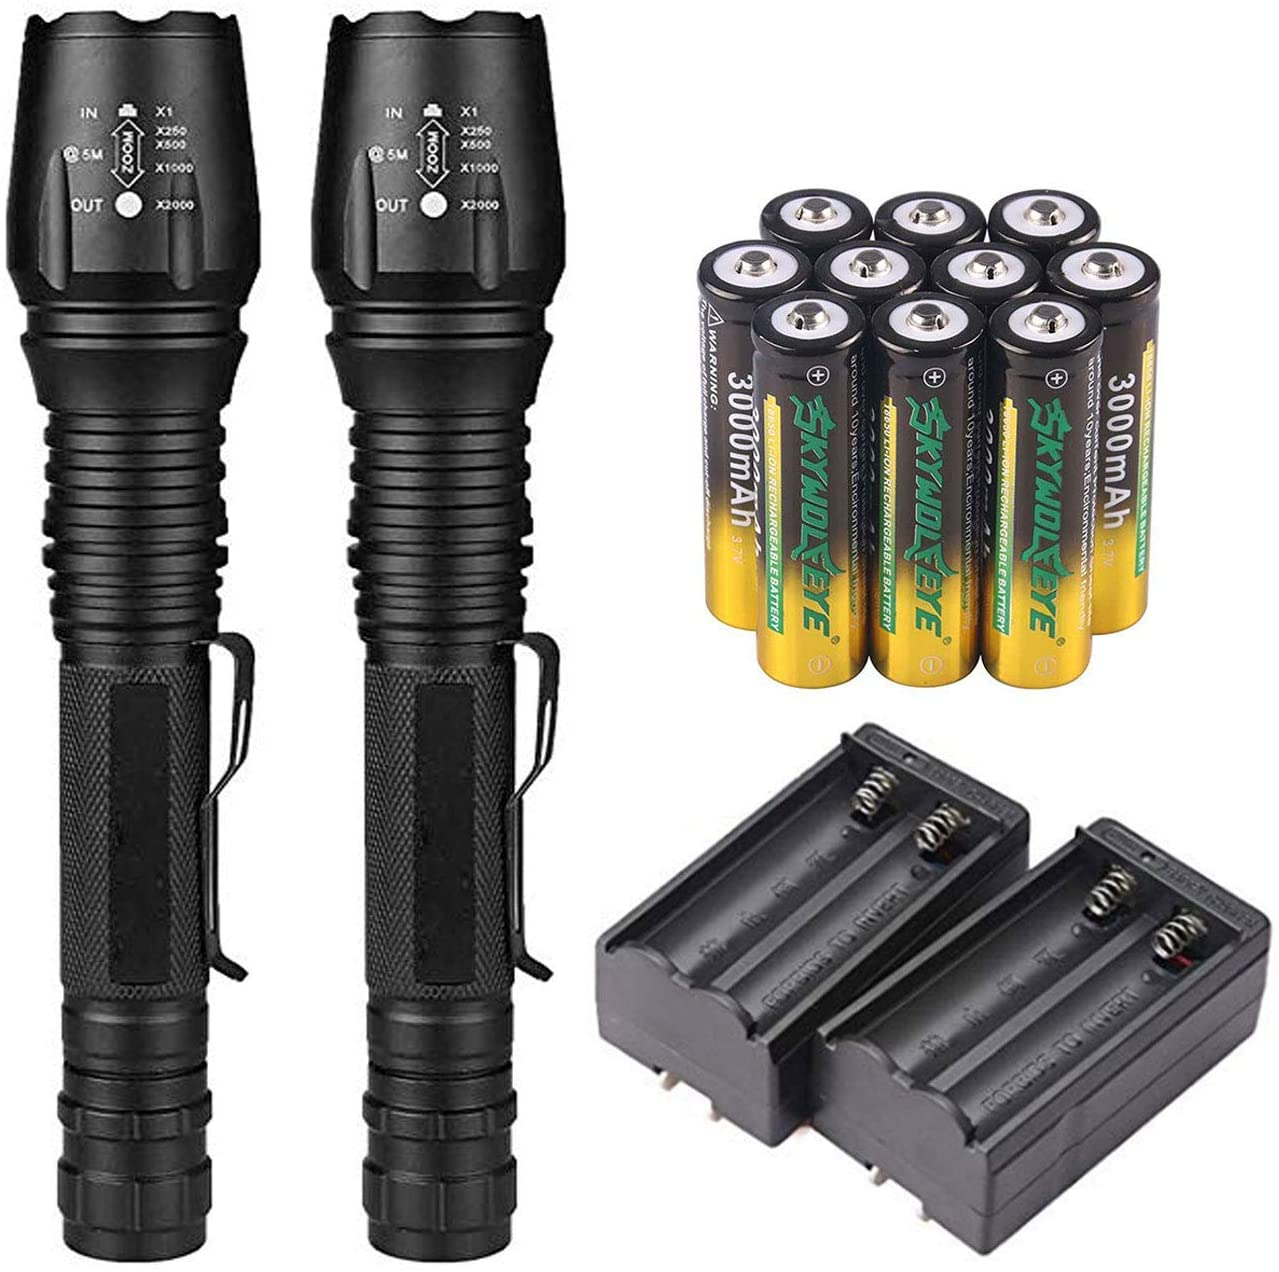 2 Set 18650 Tactical Flashlight 5 Modes 2000 Lumens Rechargeable Zoomable LED Flashlights with 10 Pack 3000mAh 3.7v li-ion rechargeable battery & 2 Pack Dual Smart Charger for Camping Fishing Hiking